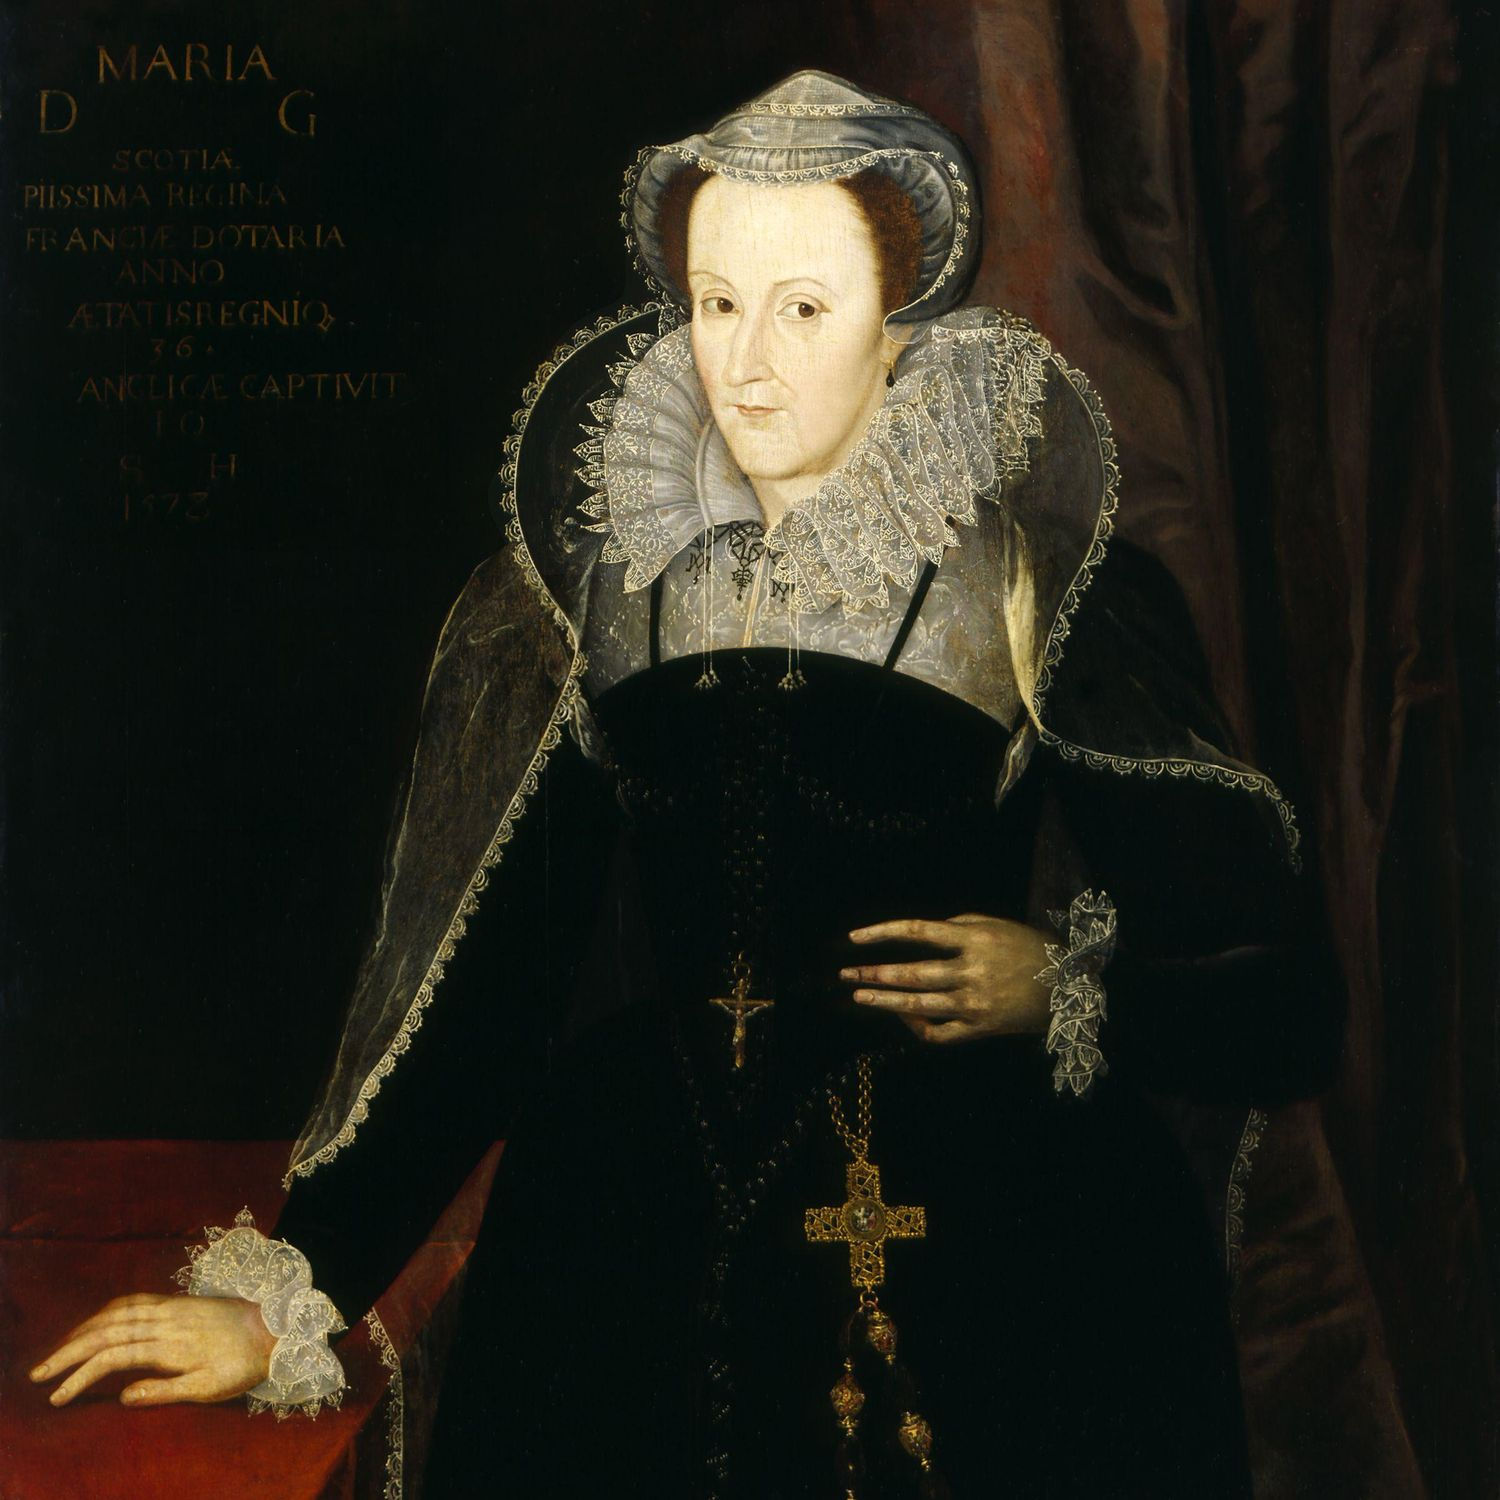 Episode 029: Mary Queen of Scots